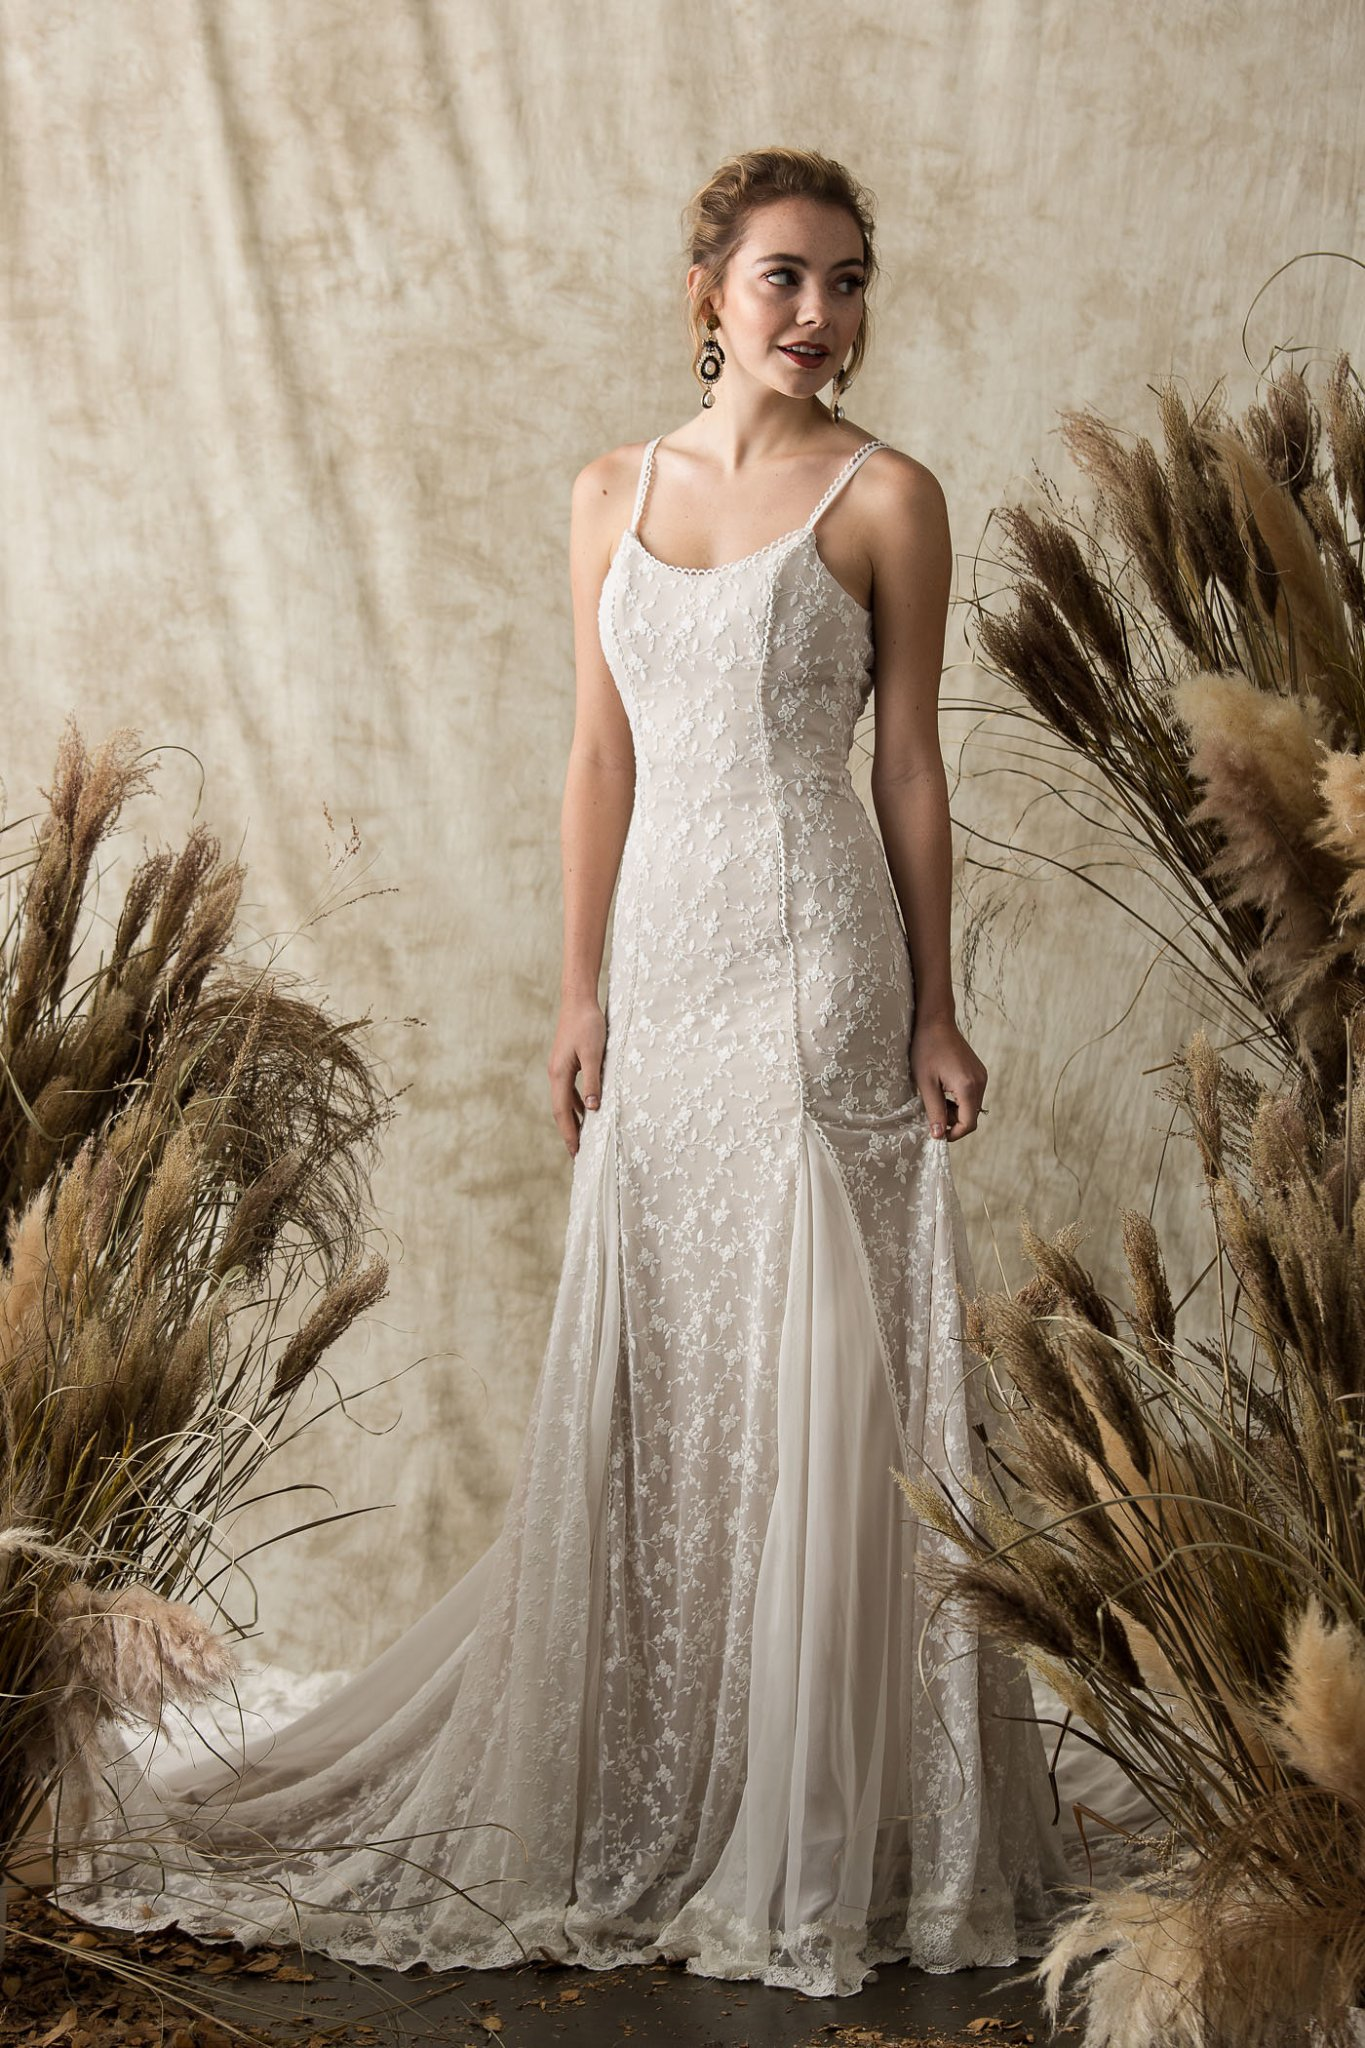 dreamy-lace-backless-wedding-dress-with-silk-godet-at-front-back-long-train